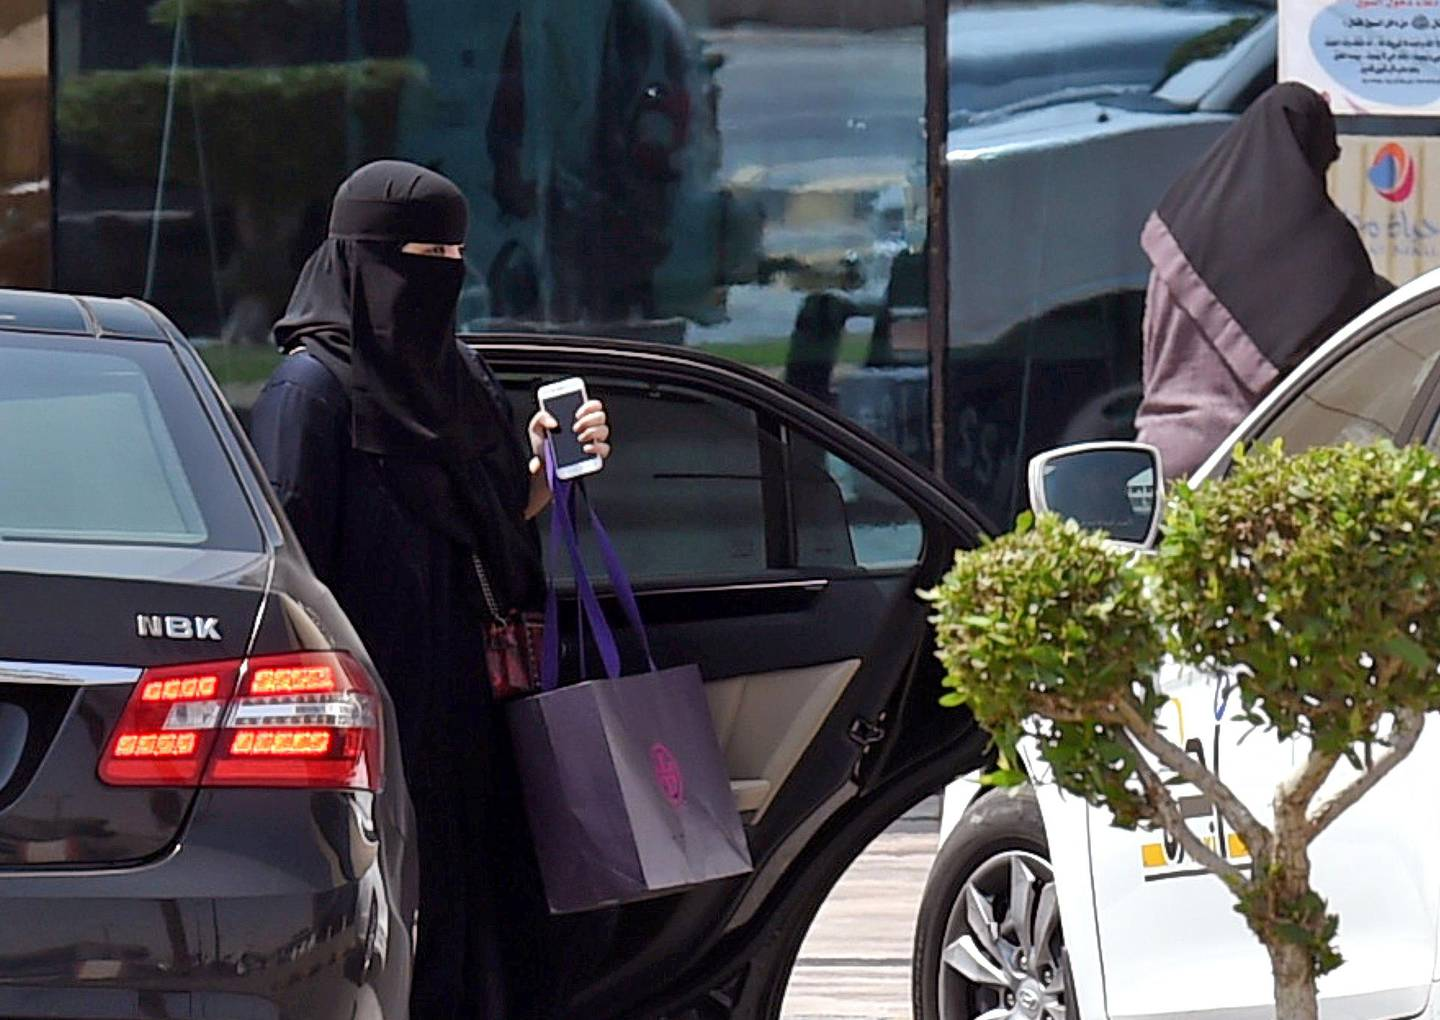 A Saudi woman disembarks from a car outside a mall in the Saudi capital Riyadh on September 27, 2017. Saudi Arabia will allow women to drive from next June, state media said on September 26, 2017 in a historic decision that makes the Gulf kingdom the last country in the world to permit women behind the wheel.  The shock announcement comes after a years-long resistance from women's rights activists, some of whom were jailed for defying the ban on female driving. / AFP PHOTO / FAYEZ NURELDINE